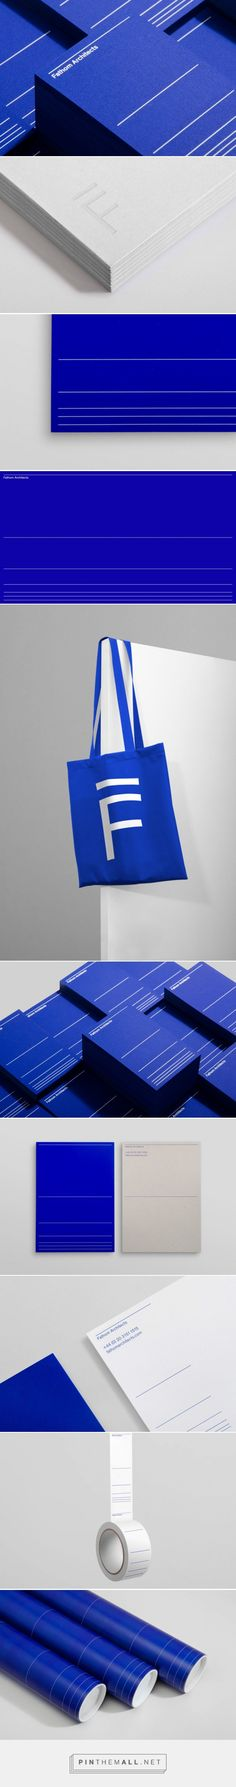 Fathom Architects Branding by dn&co | Fivestar Branding – Design and Branding Agency & Inspiration Gallery